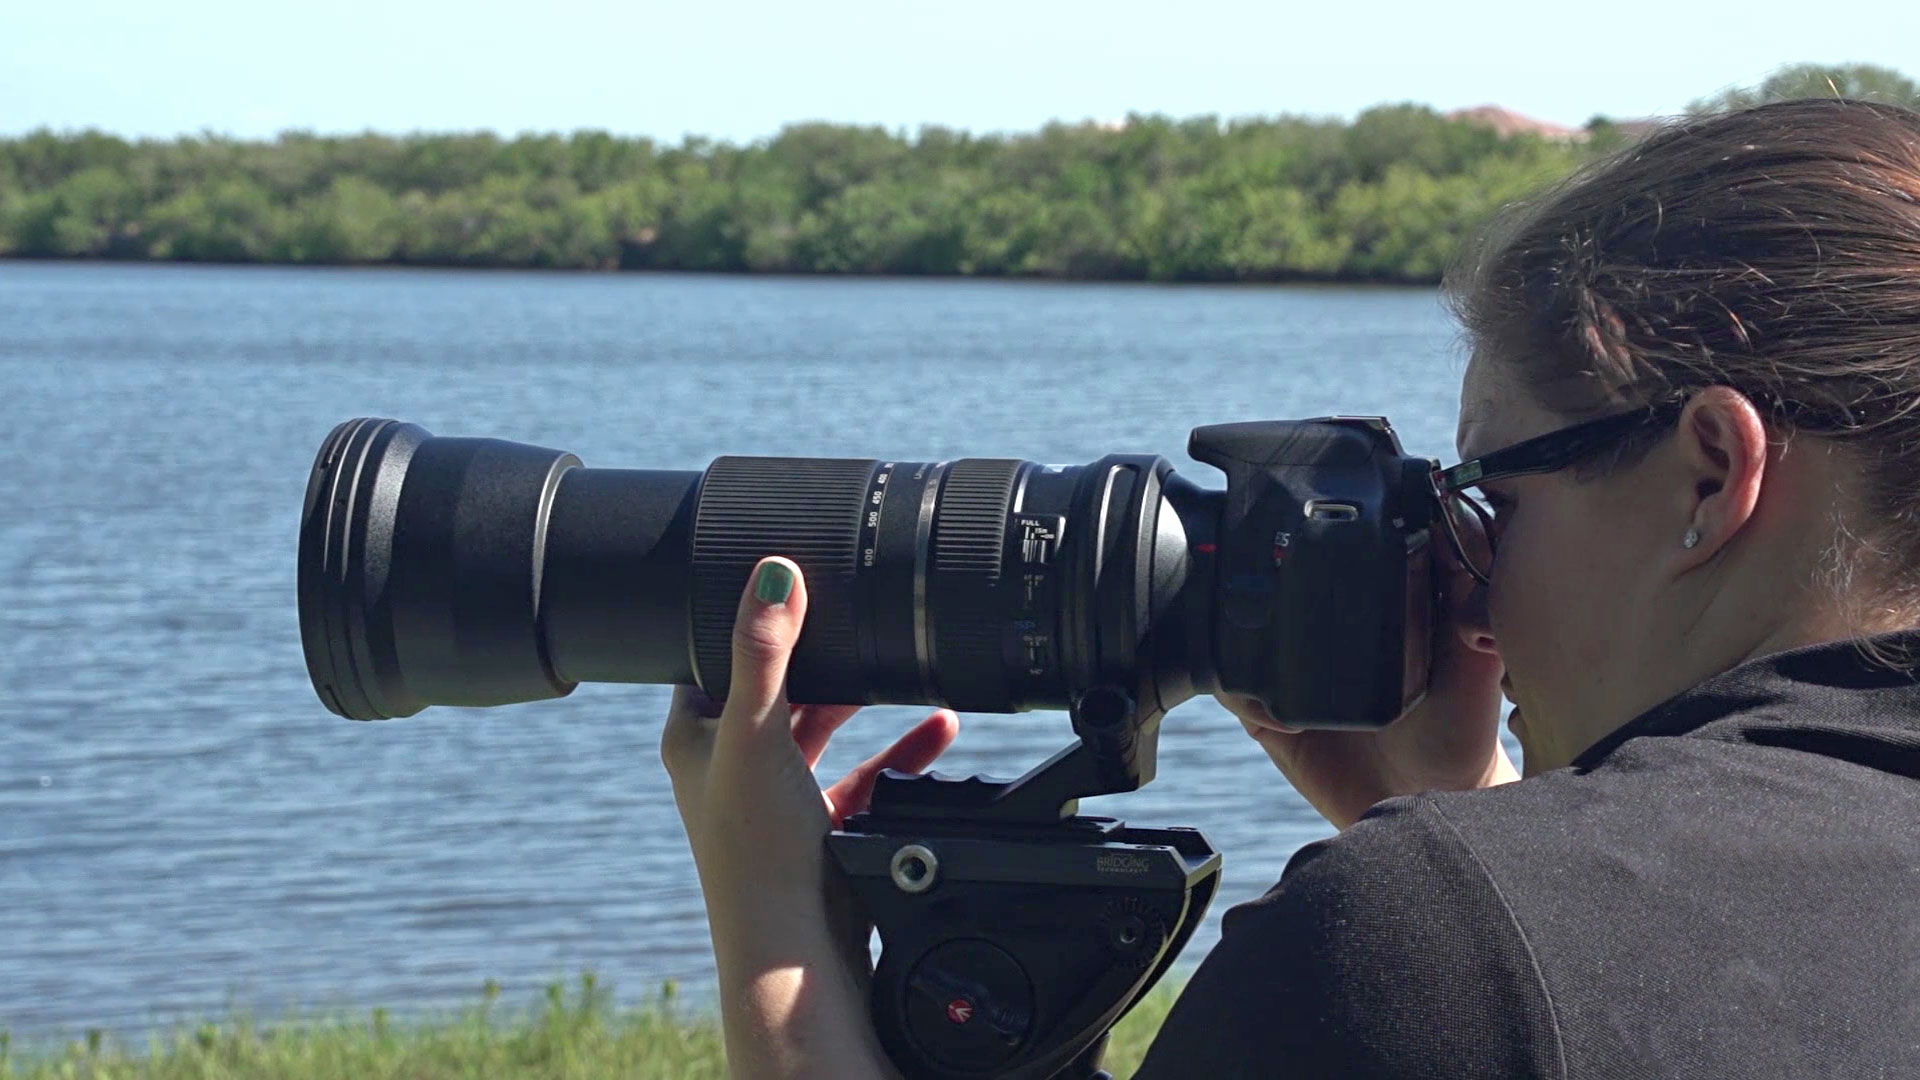 Hands-On Review: Tamron 150-600mm f/5-6 3 SP Di VC USD for